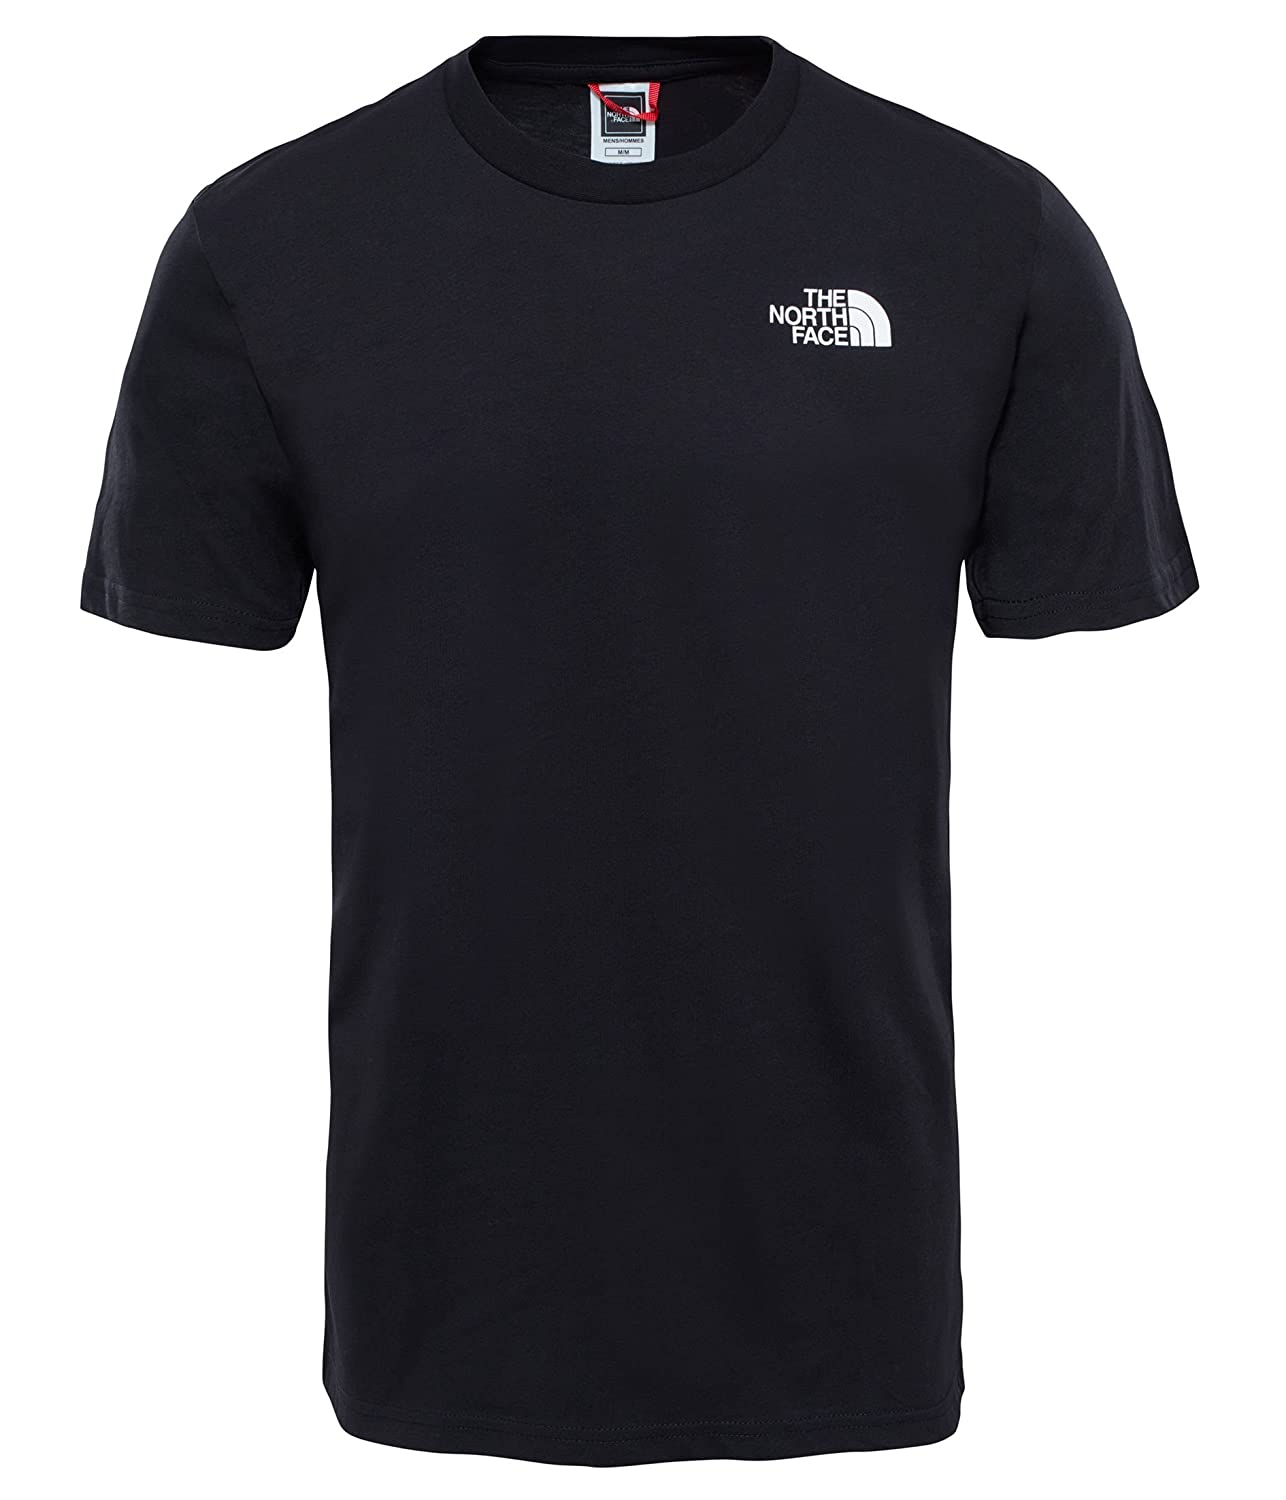 fbb3b3d74 The North Face Men Simple Dome Short Sleeved T-Shirt